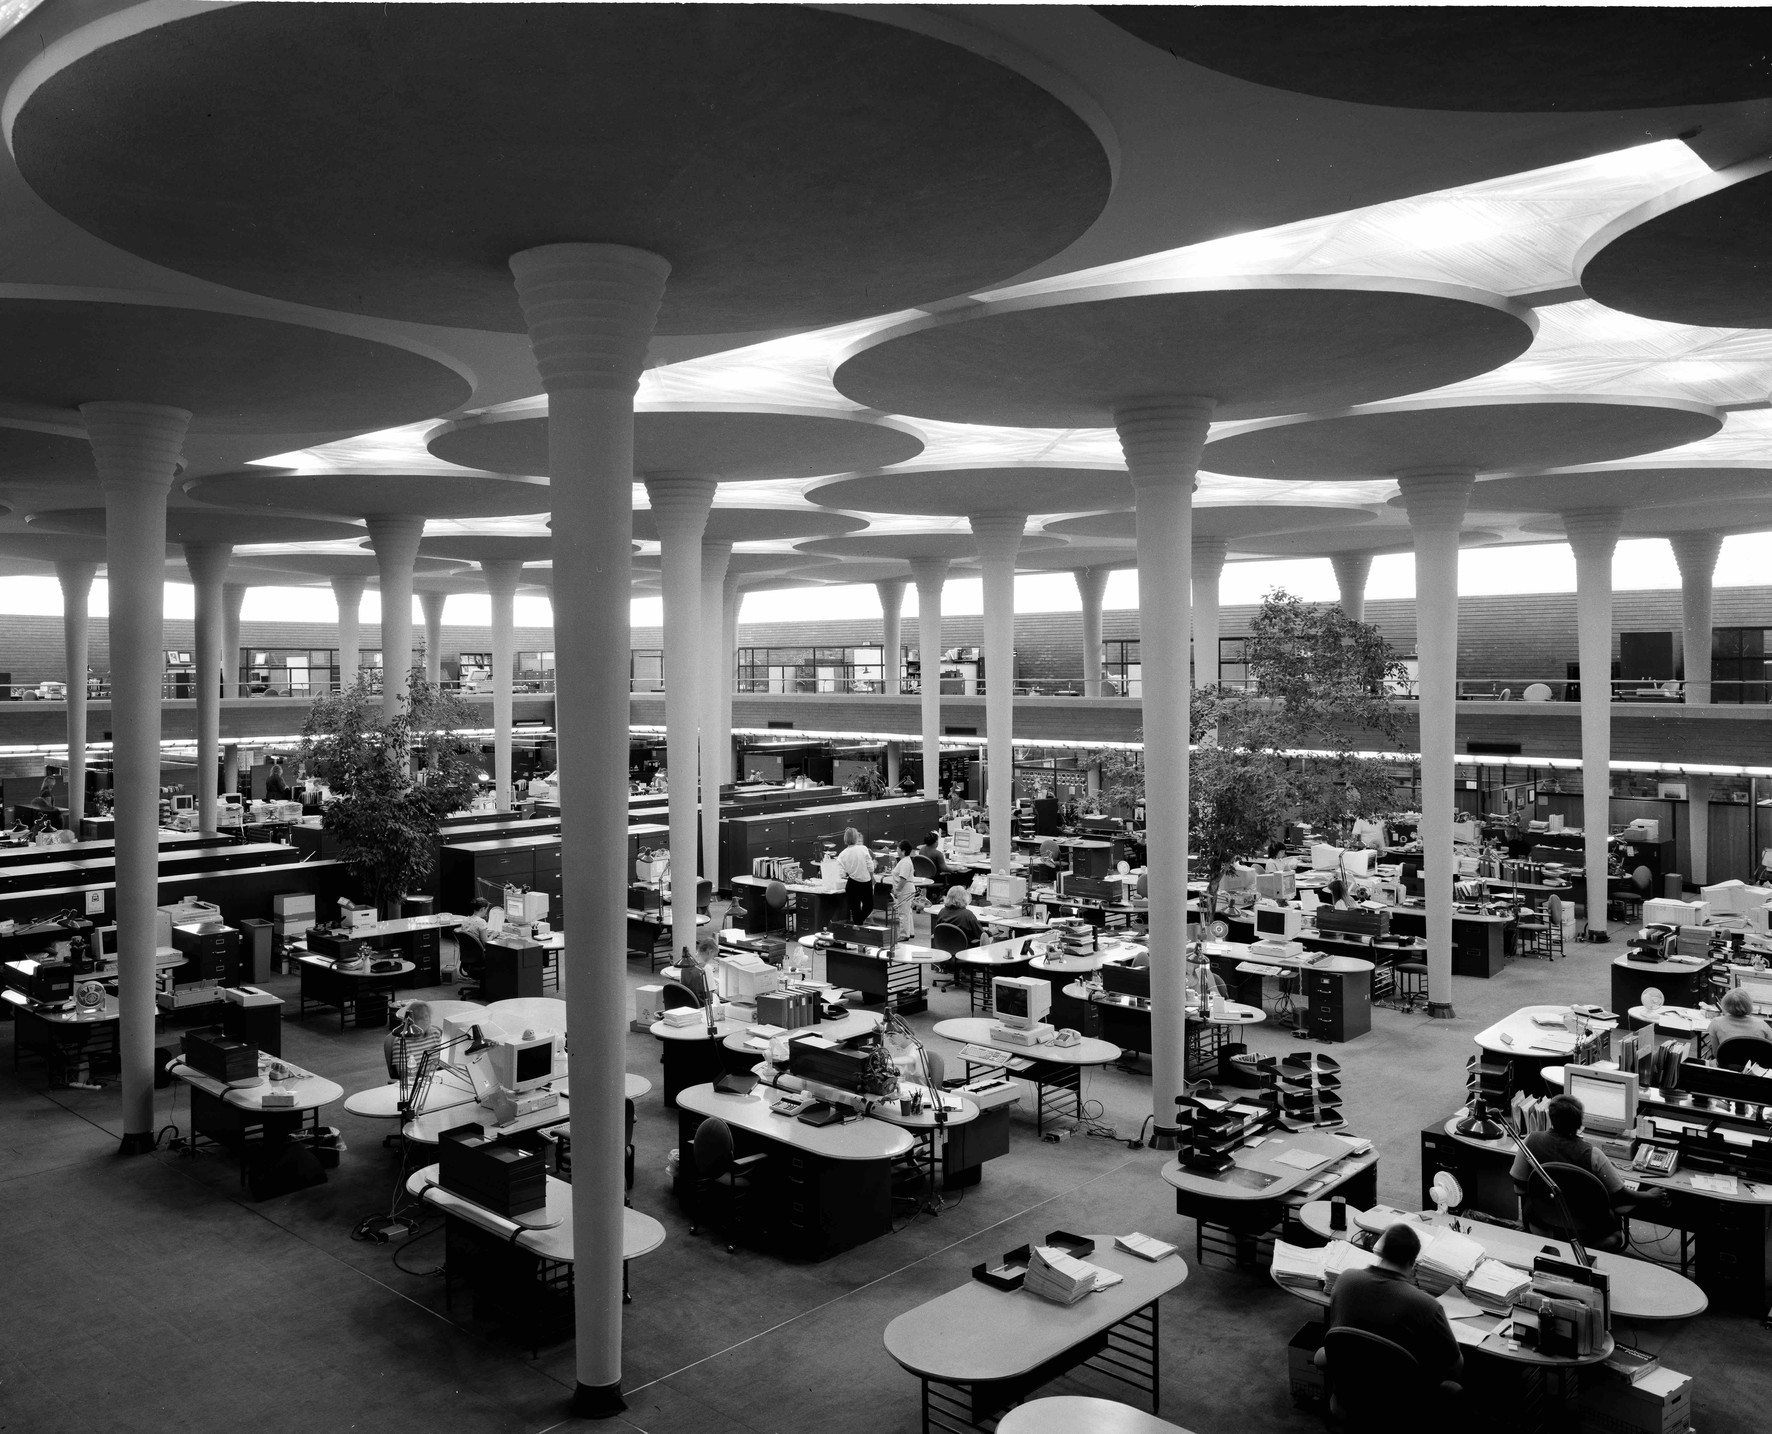 Johnson Wax Headquarters / Getty Images